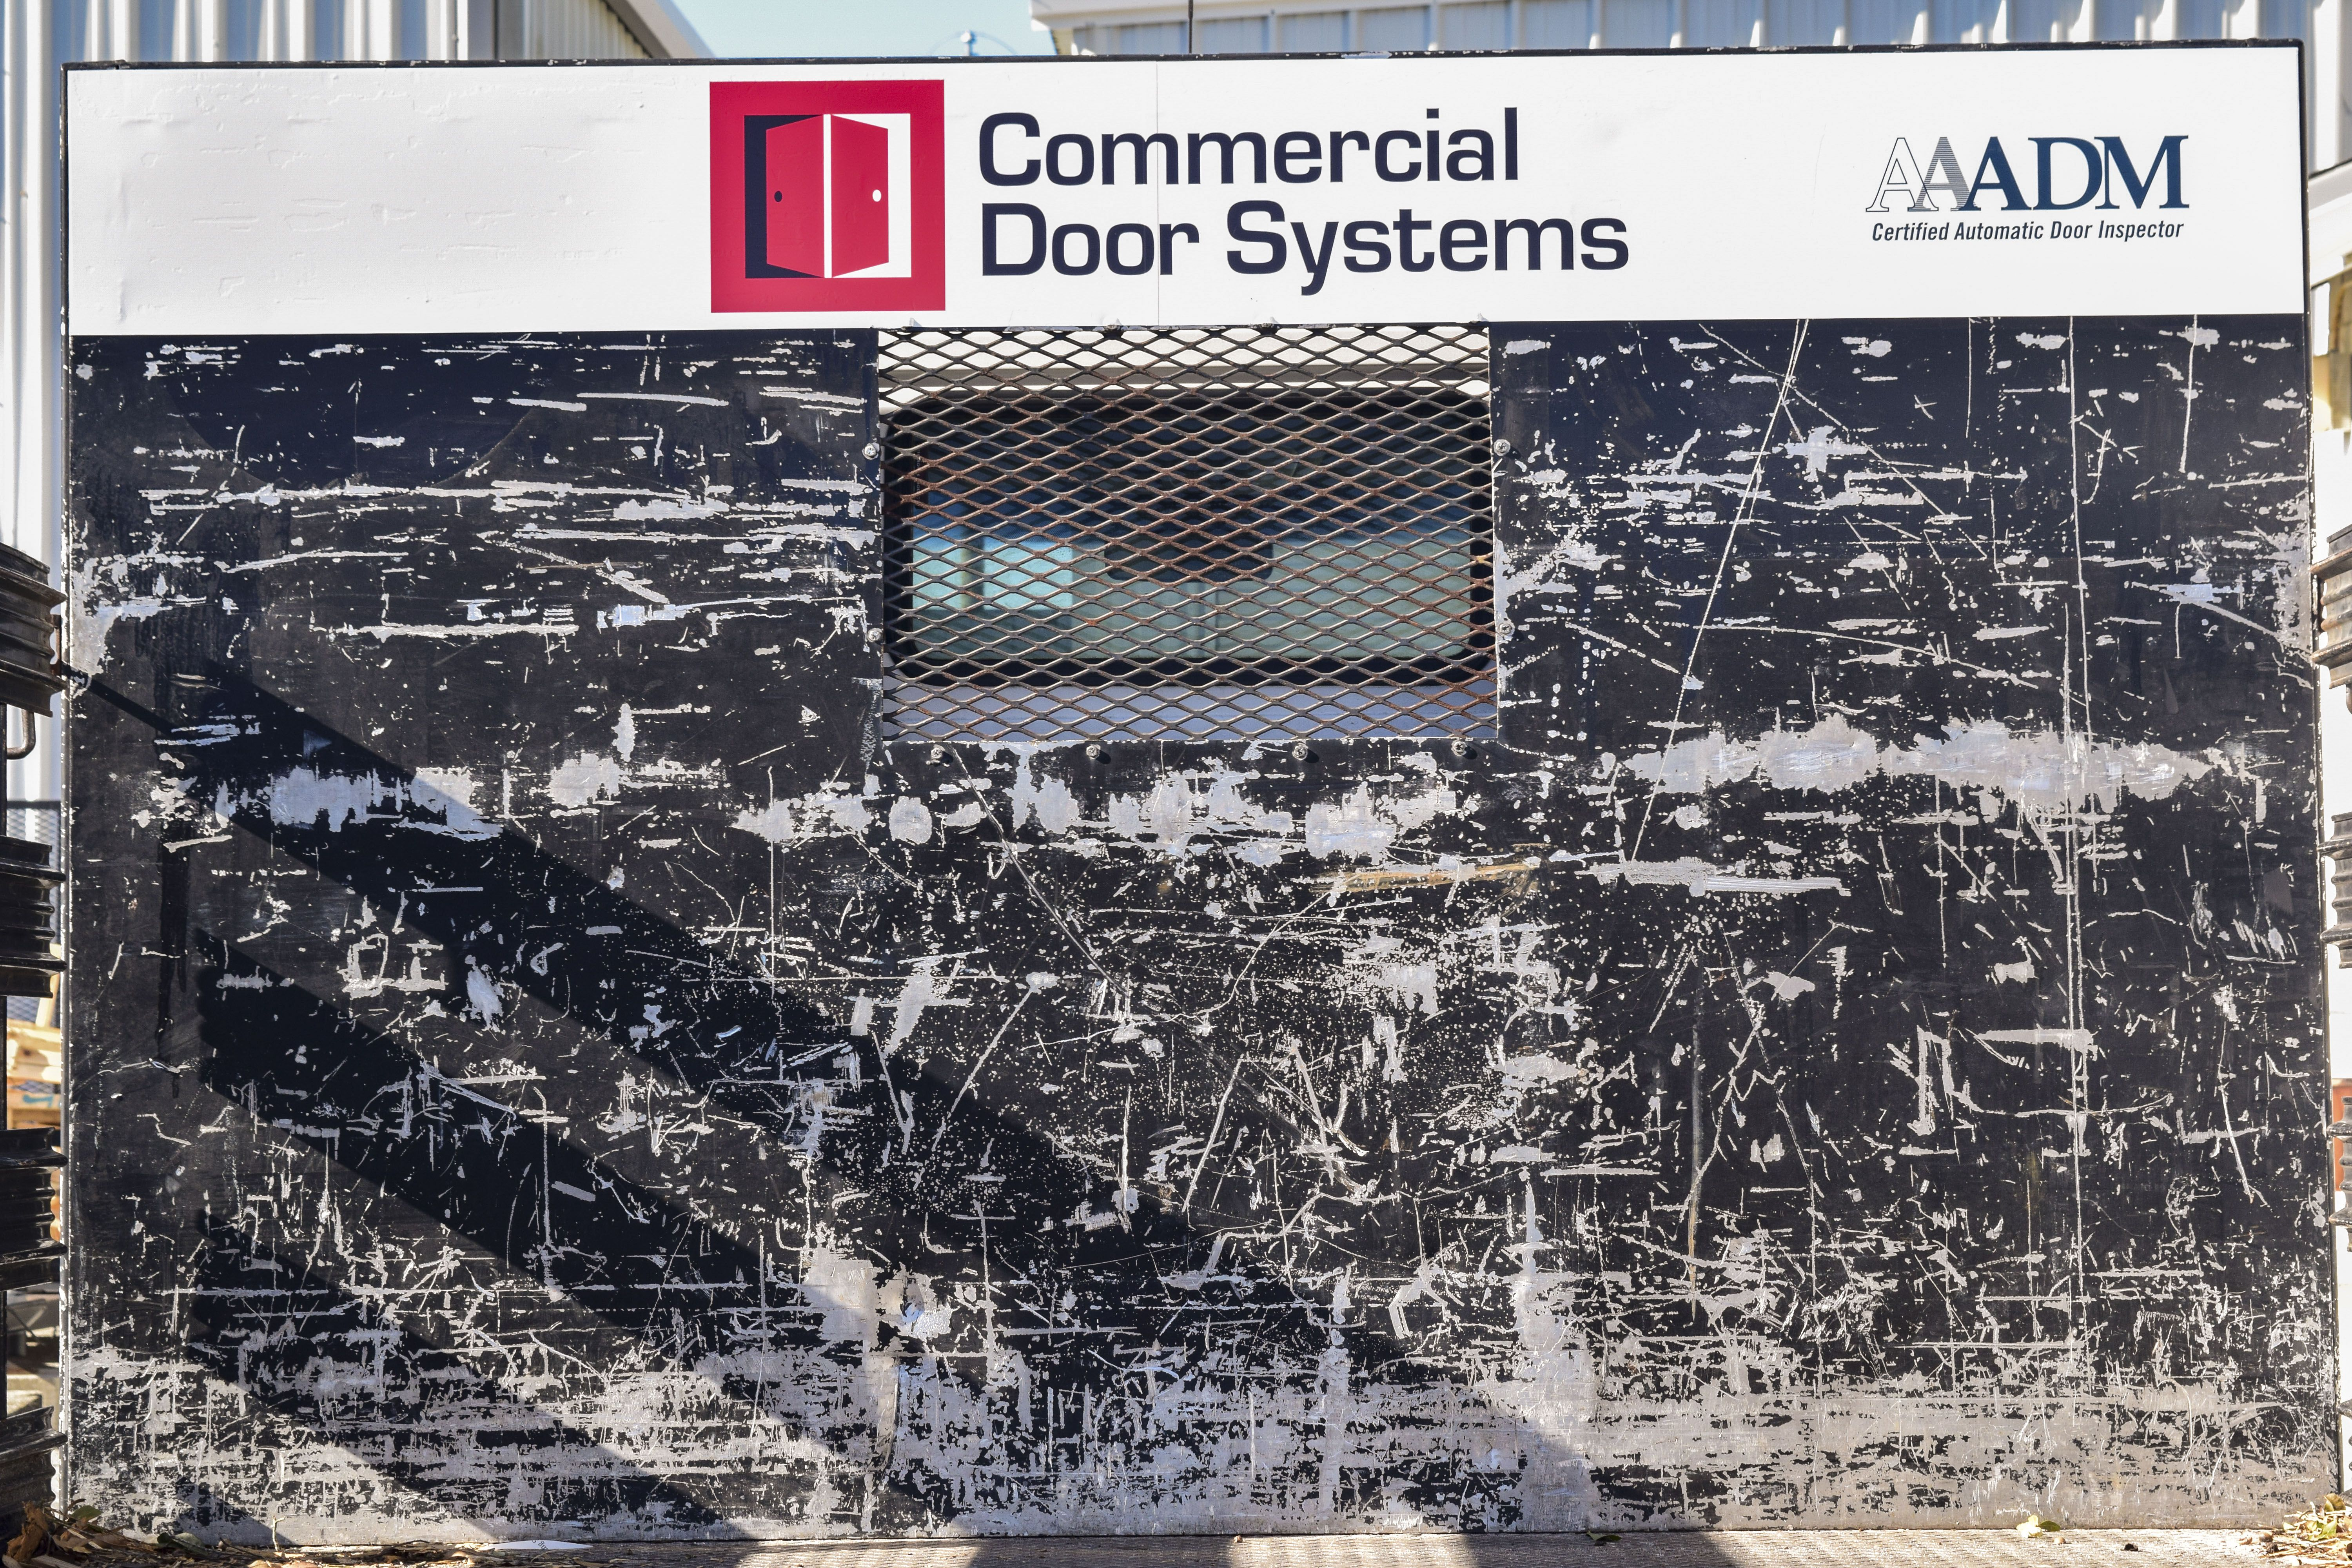 Commercial Door Systems Graphics By Pensacola Sign In Pensacola, Florida.  🚗💨 On Average